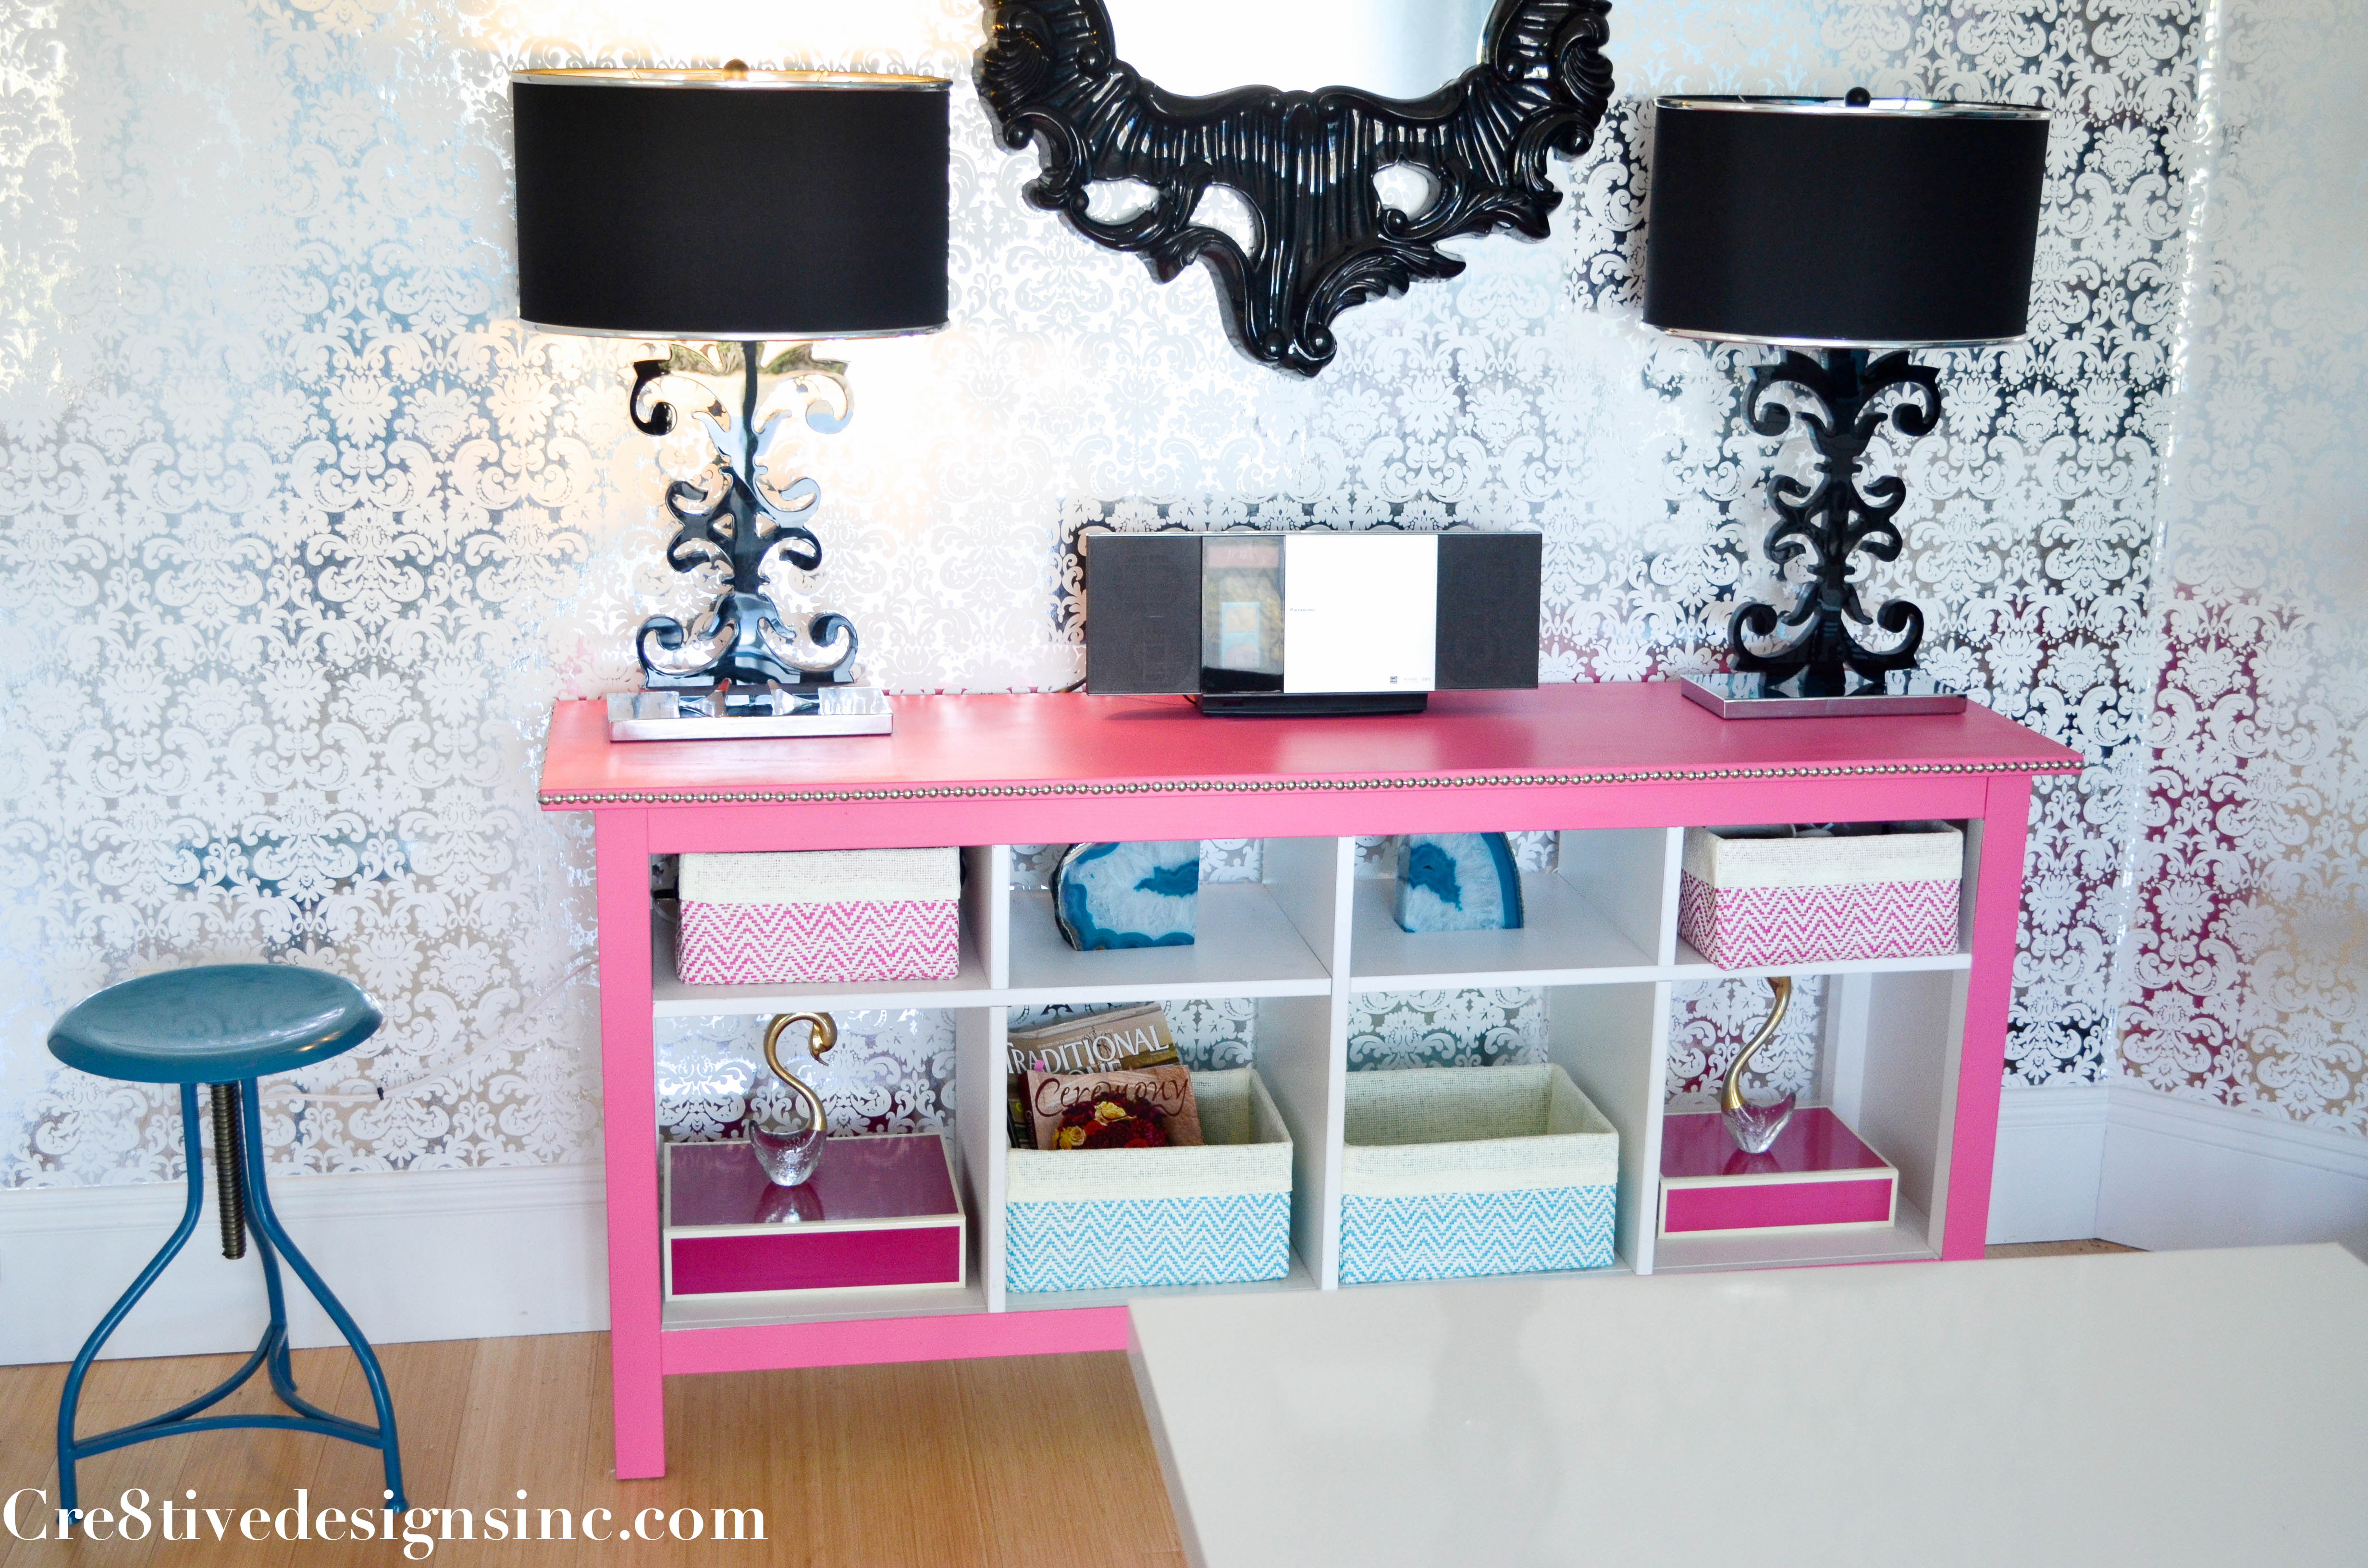 My studio tour aka craft room Cre8tive Designs Inc – Pink Bookcase Ikea